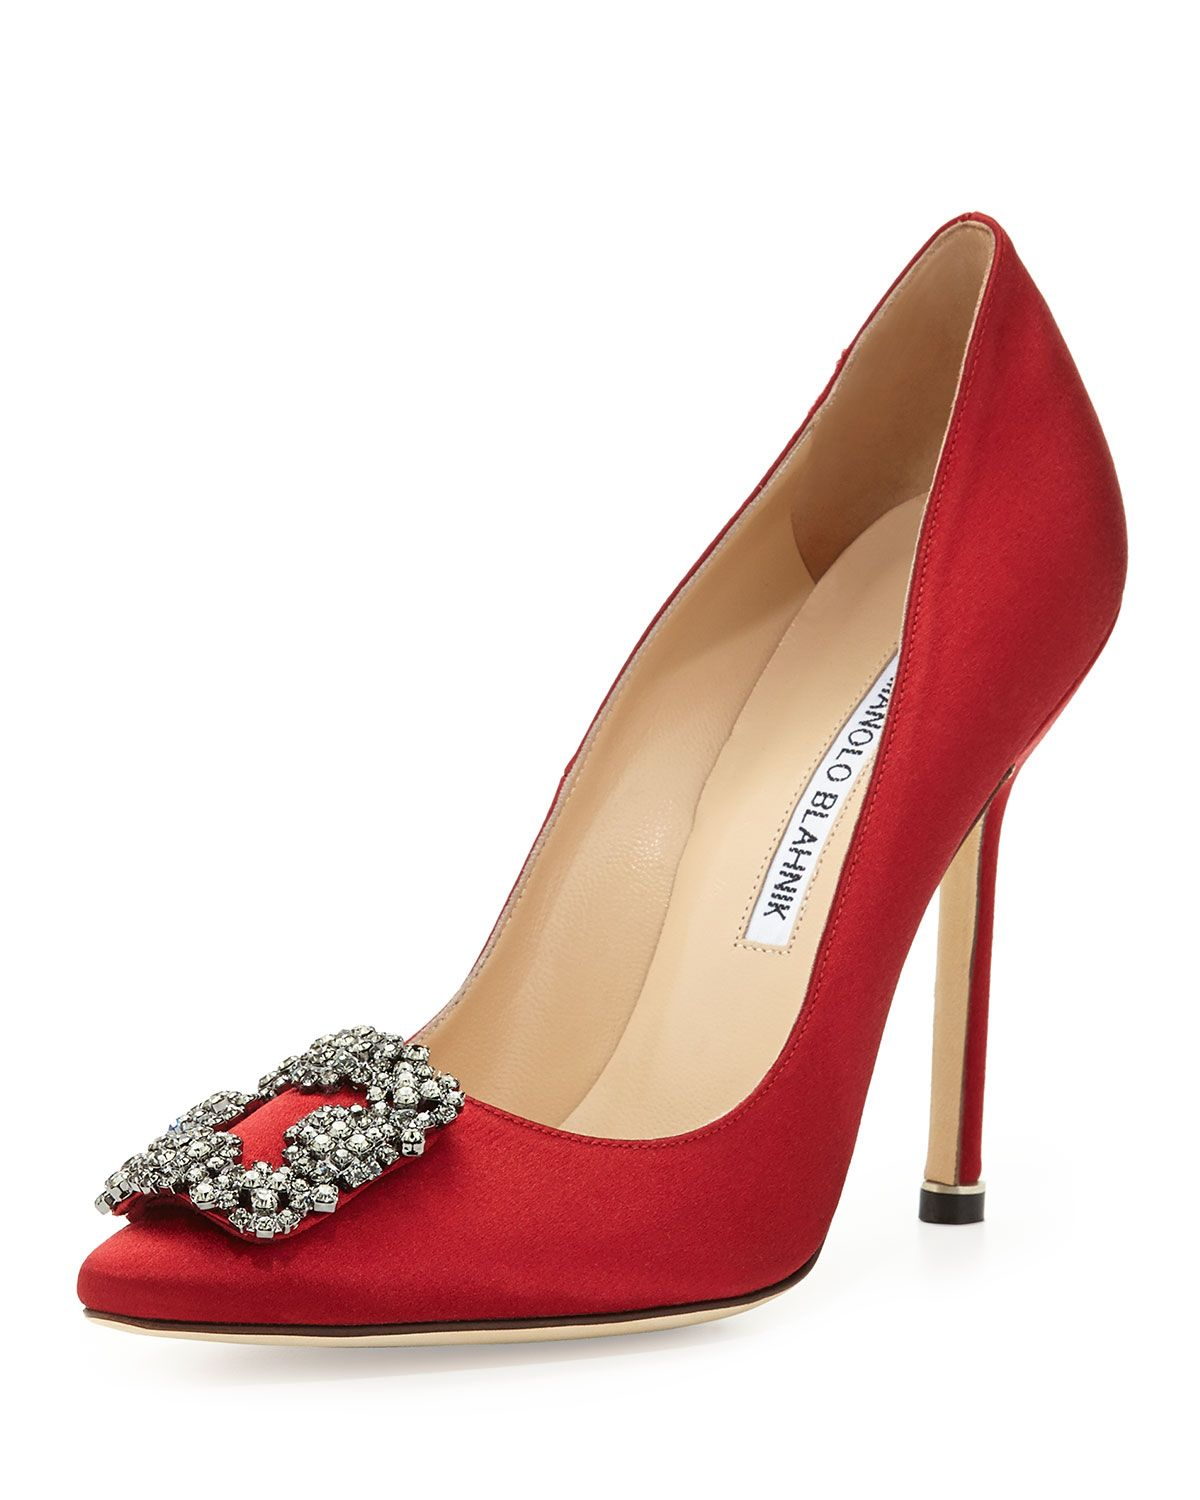 028804538643 Manolo Blahnik Hangisi Satin Crystal-Toe Pump